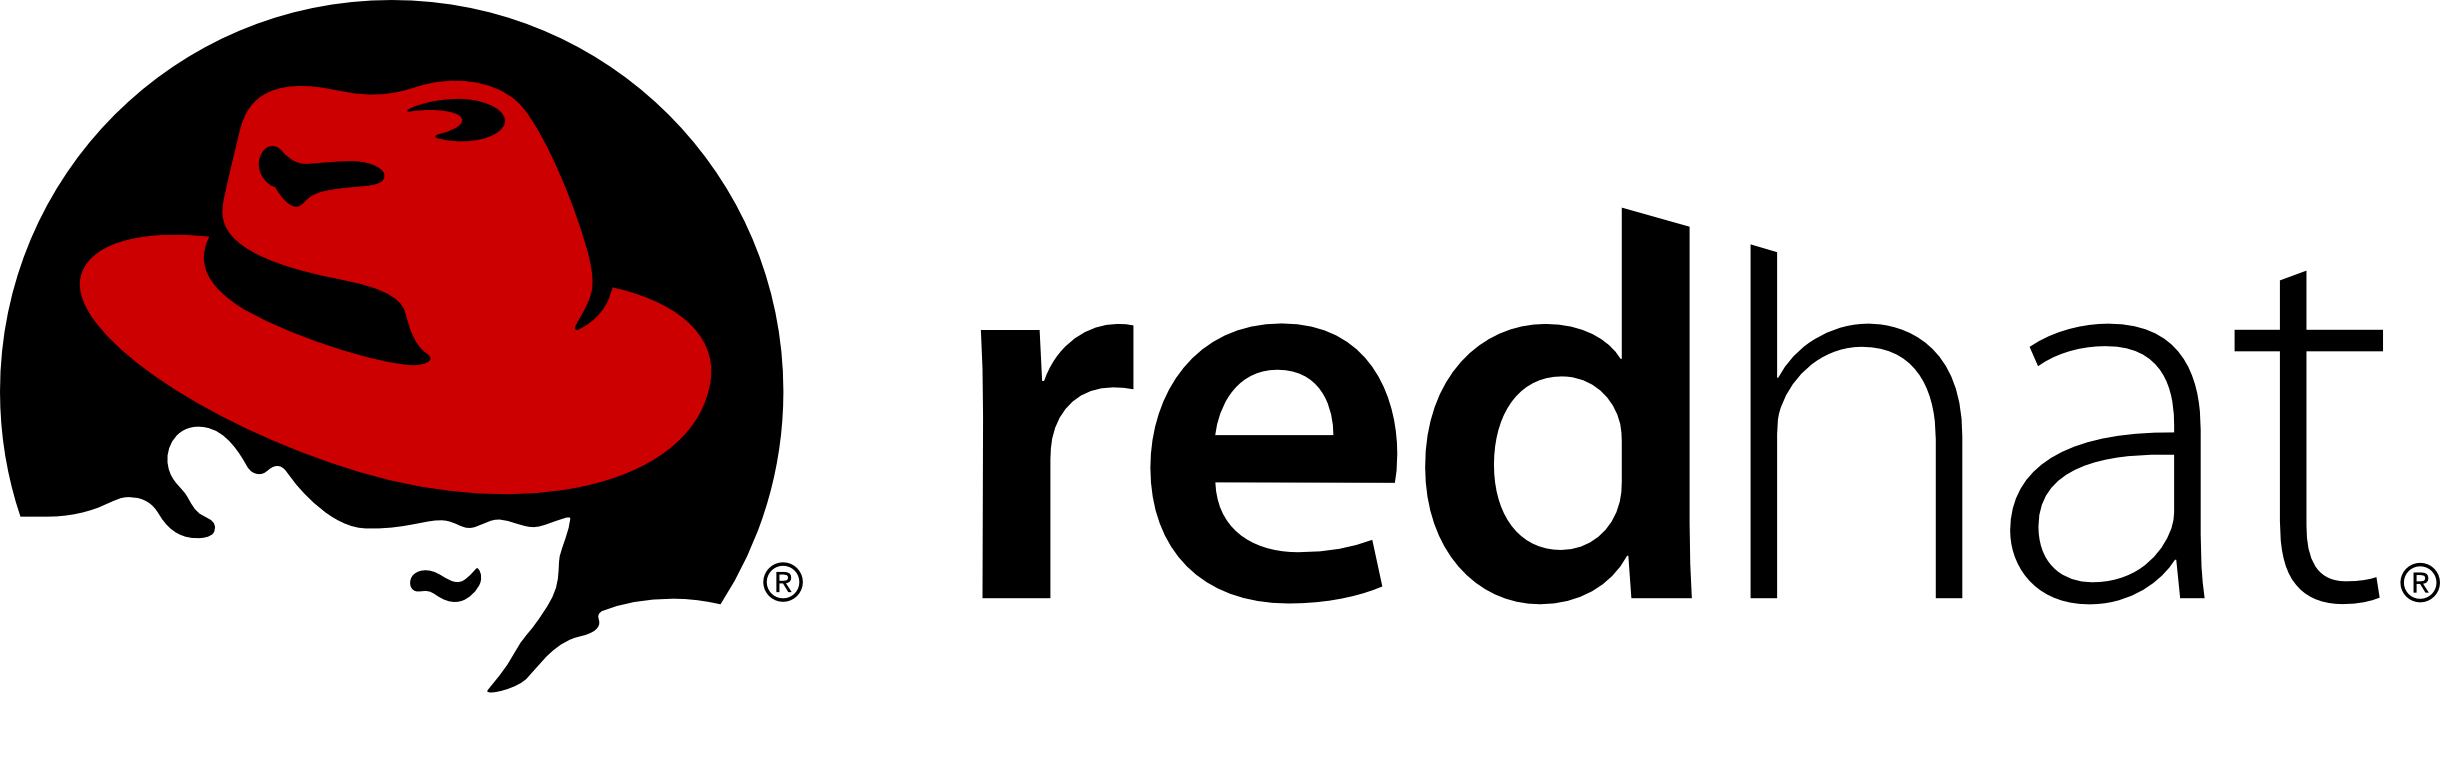 Red_hat_logo